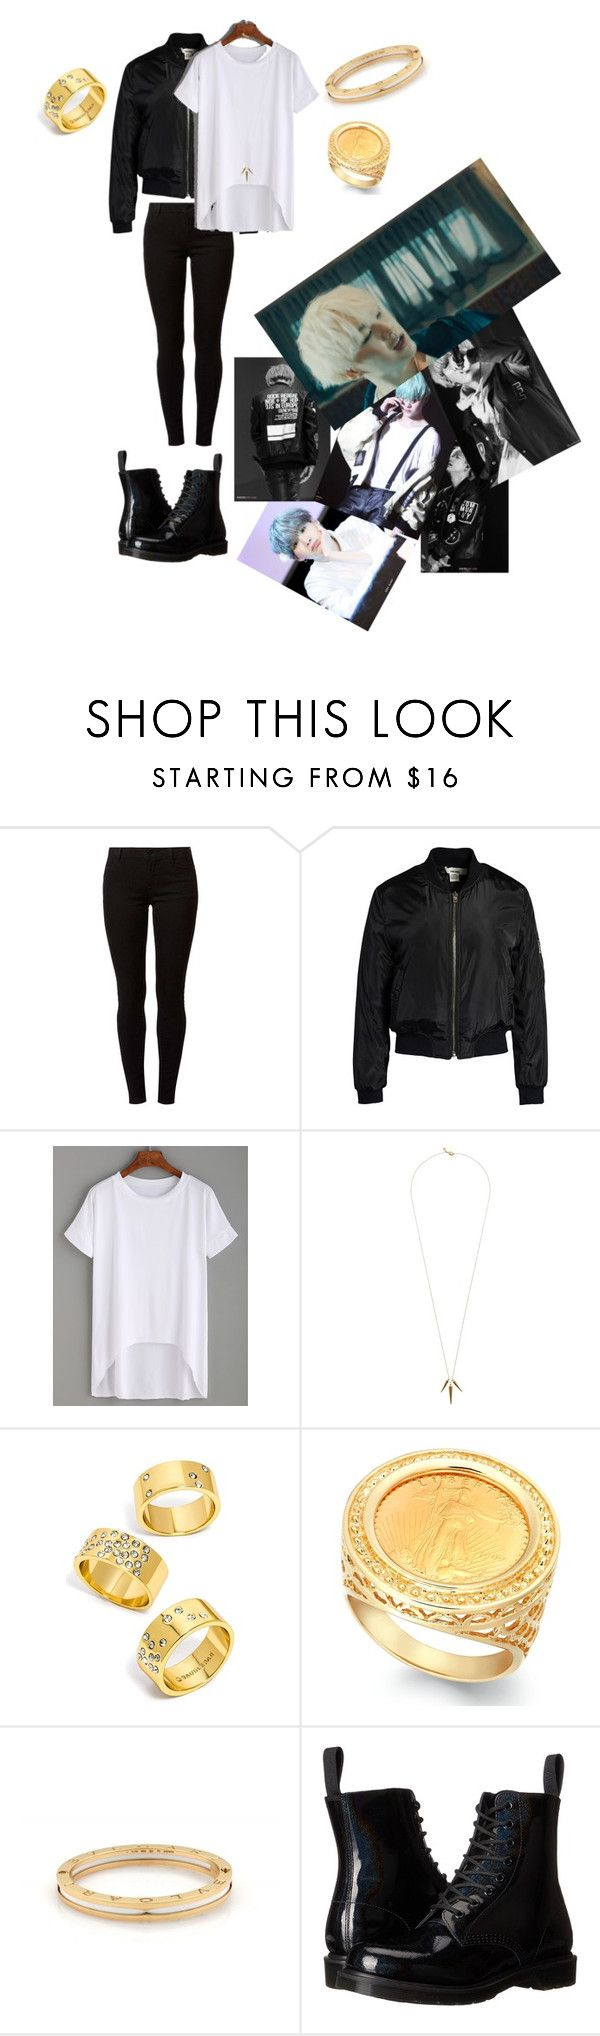 """""""AGUST D OUTFIT!! """" by msunicornanna ❤ liked on Polyvore featuring Dorothy Perkins, Sans Souci, Gorjana, BaubleBar, Bulgari and Dr. Martens"""